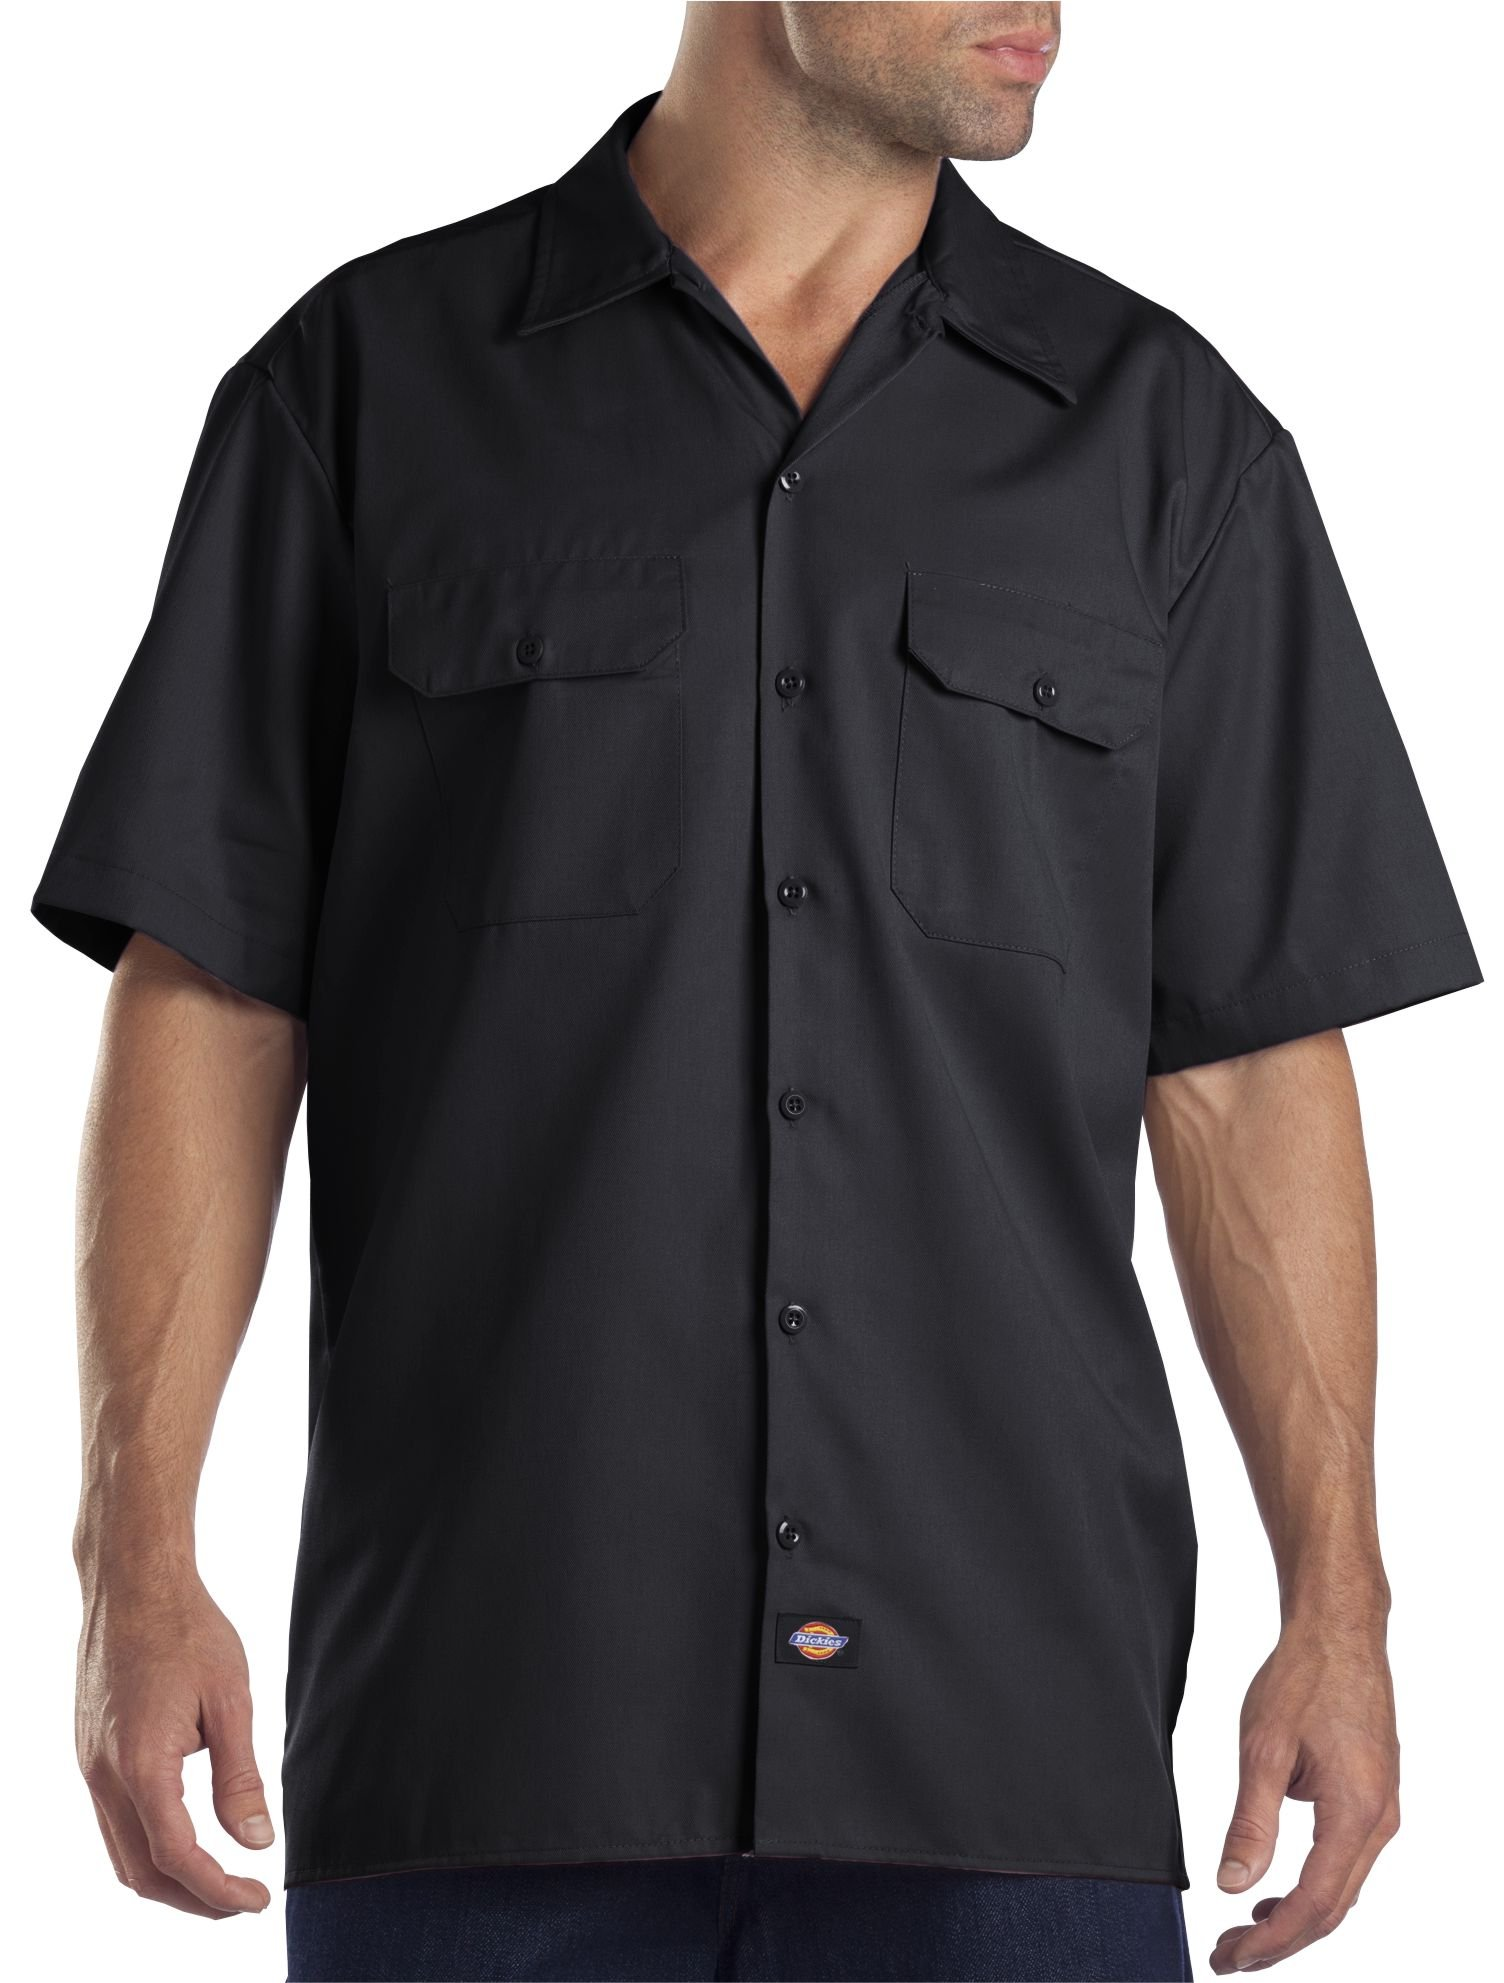 Dickies Men's Big and Tall Short Sleeve Work Shirt, Black, Extra Large